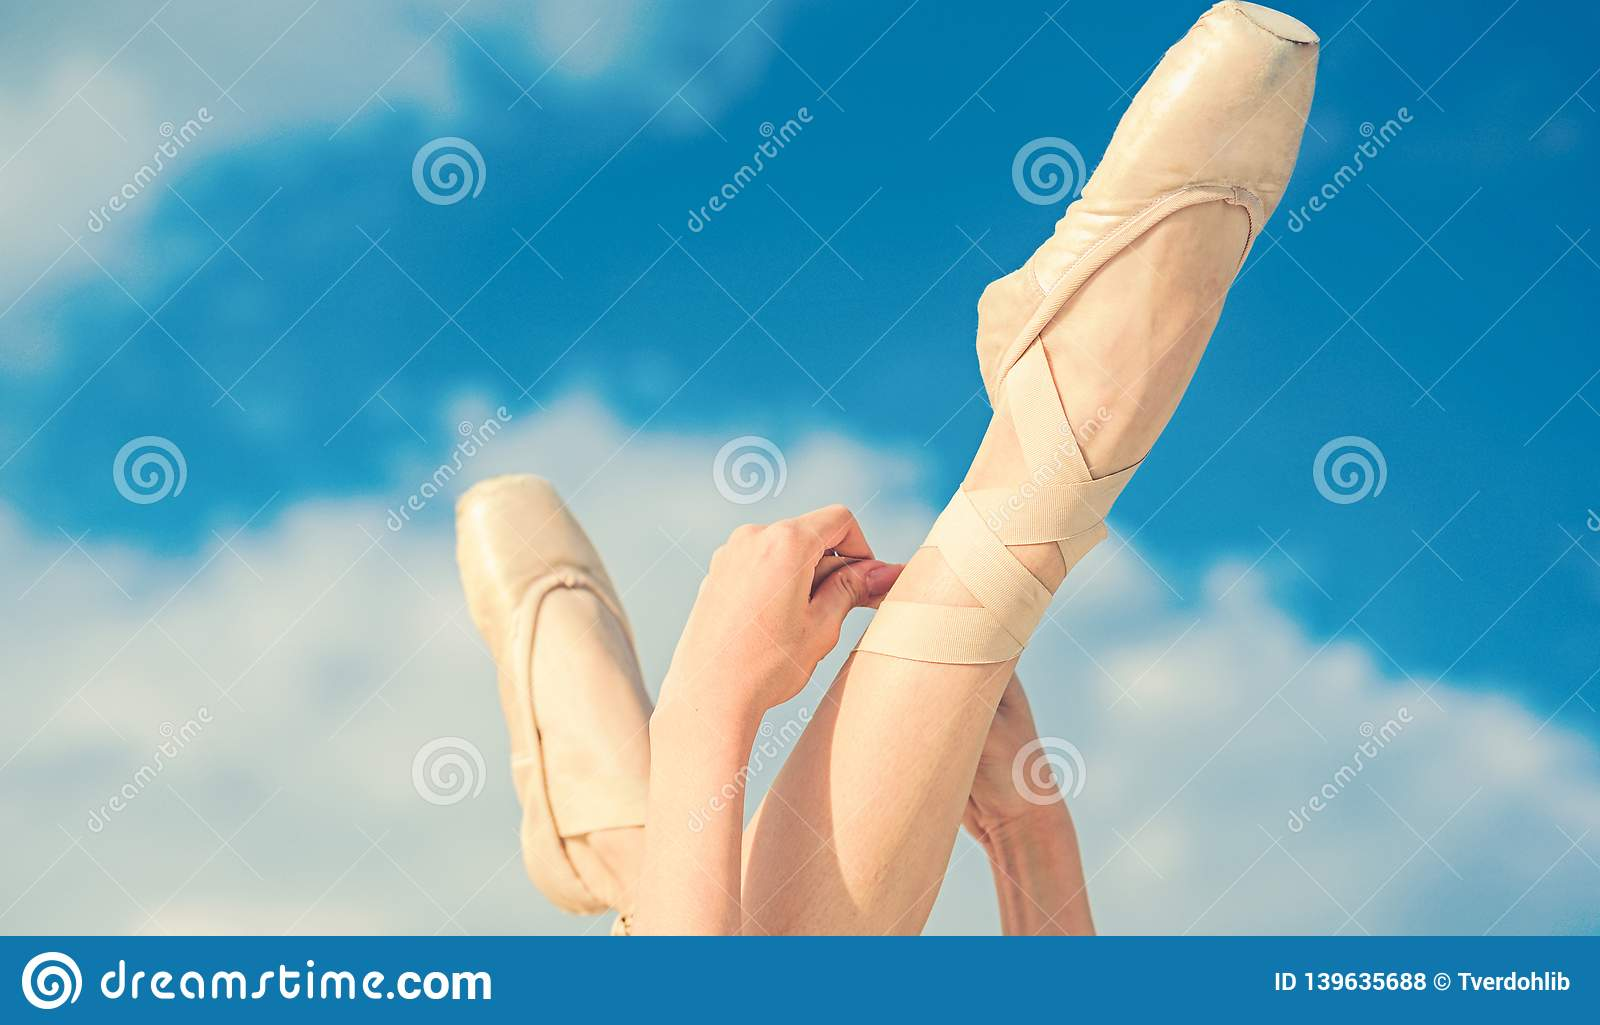 Accentuating the beauty. Ballet slippers. Ballerina shoes. Ballerina legs in ballet shoes. Feet in pointe shoes. Pointe